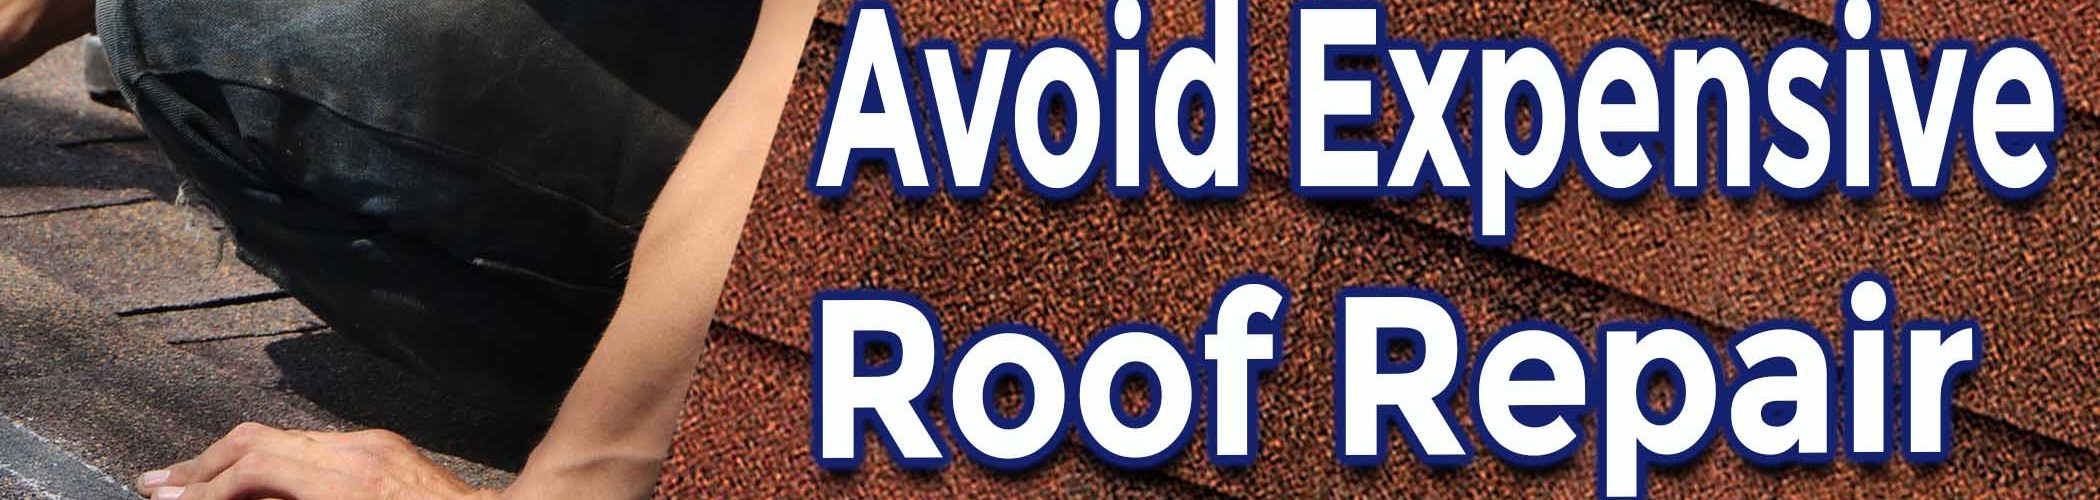 Practical Steps to Avoid Expensive Roof Repair Dearborn MI.